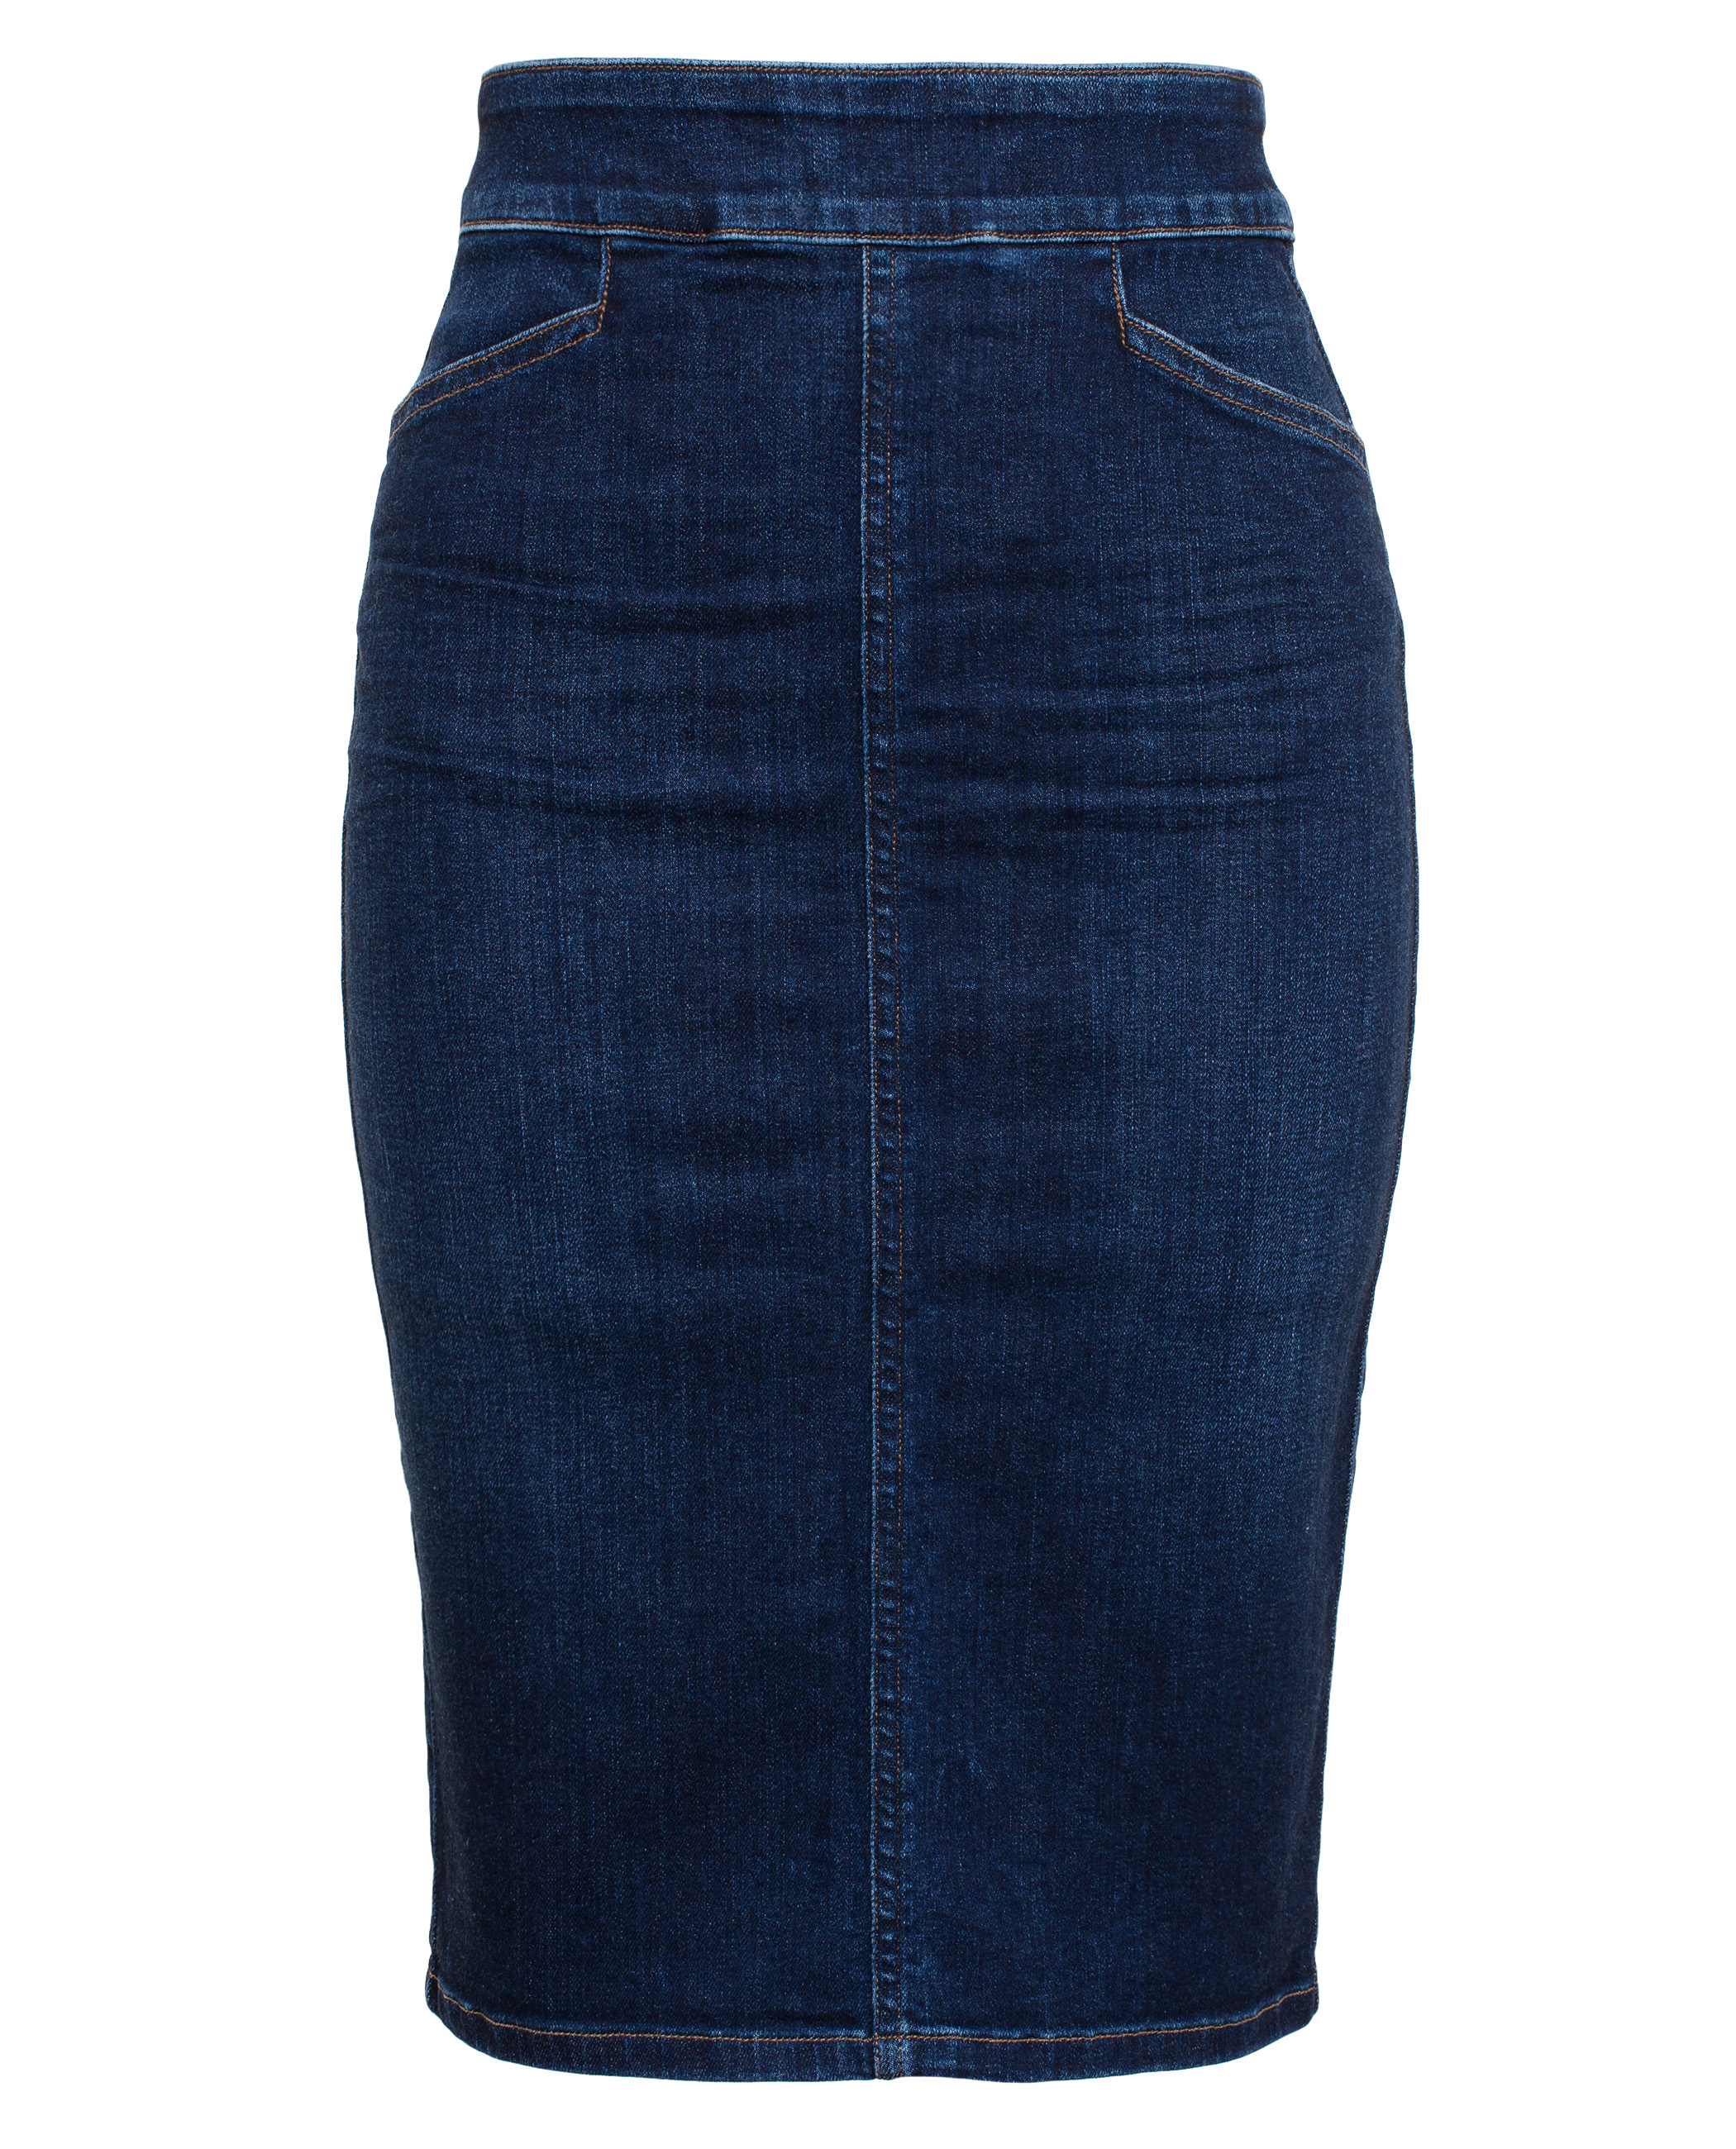 You searched for: denim pencil skirt! Etsy is the home to thousands of handmade, vintage, and one-of-a-kind products and gifts related to your search. No matter what you're looking for or where you are in the world, our global marketplace of sellers can help you find unique and affordable options. Let's get started!